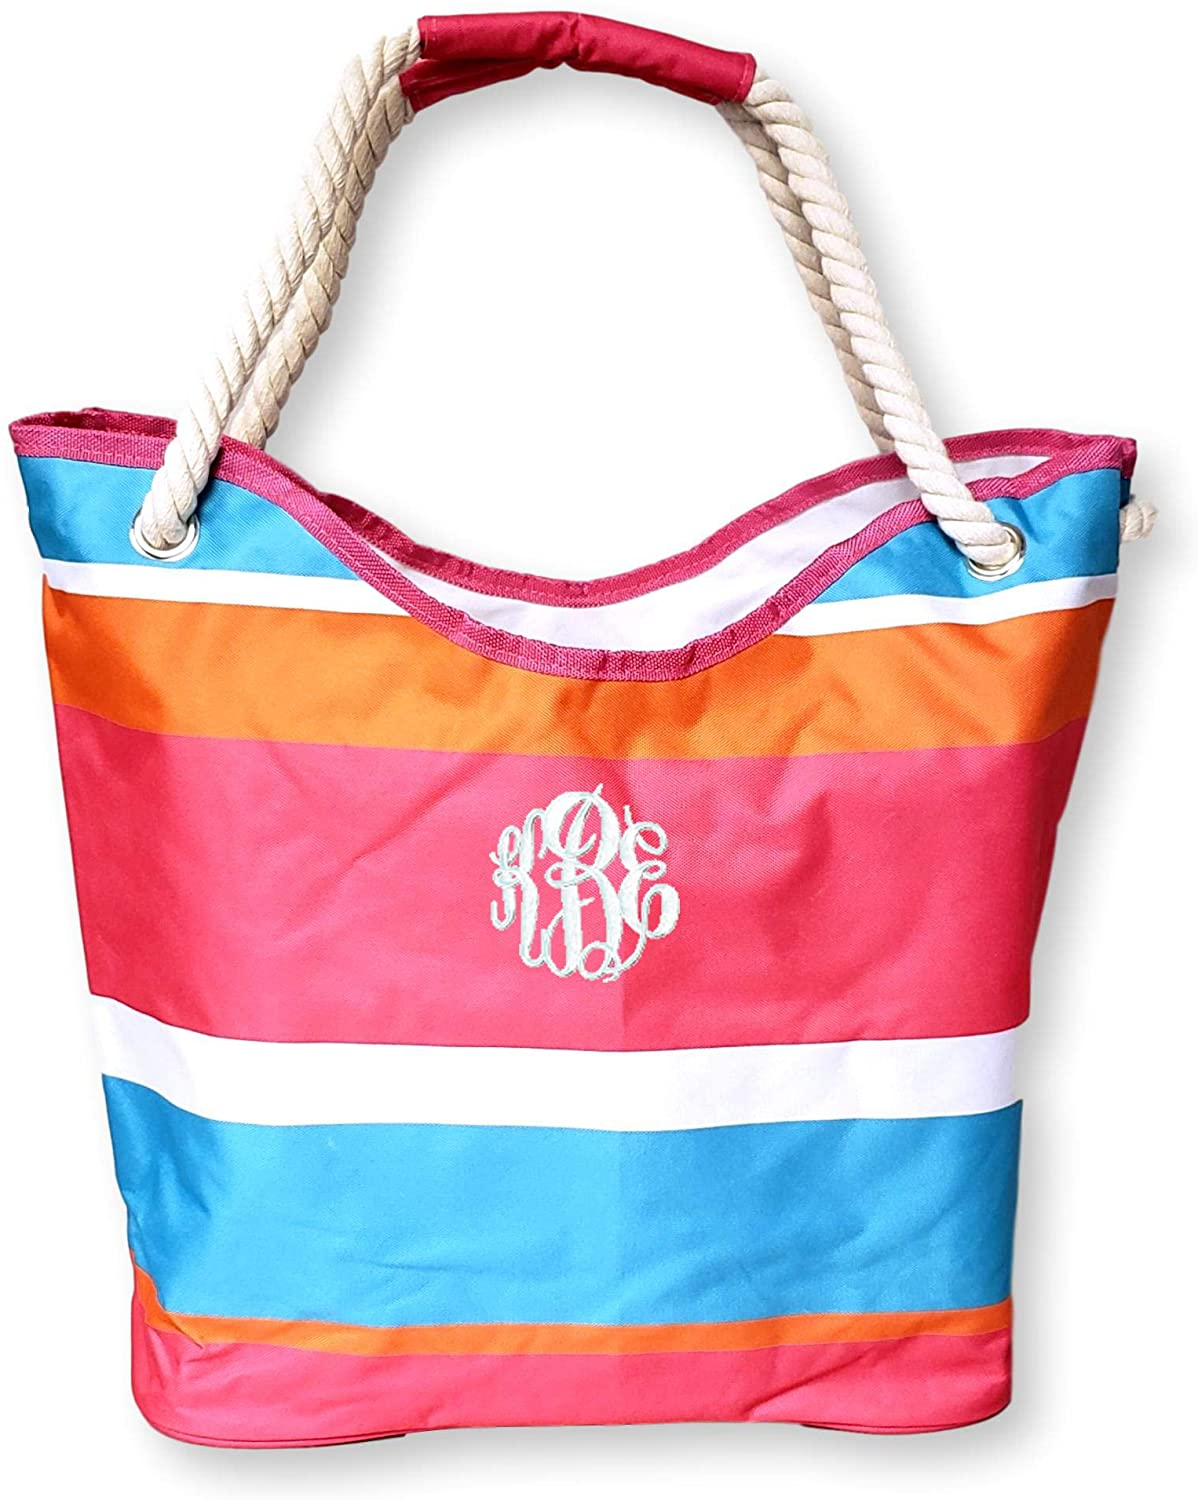 Large Canvas Striped Beach Bag Tote with Waterproof Interior for Beach, Pool, or Shopping